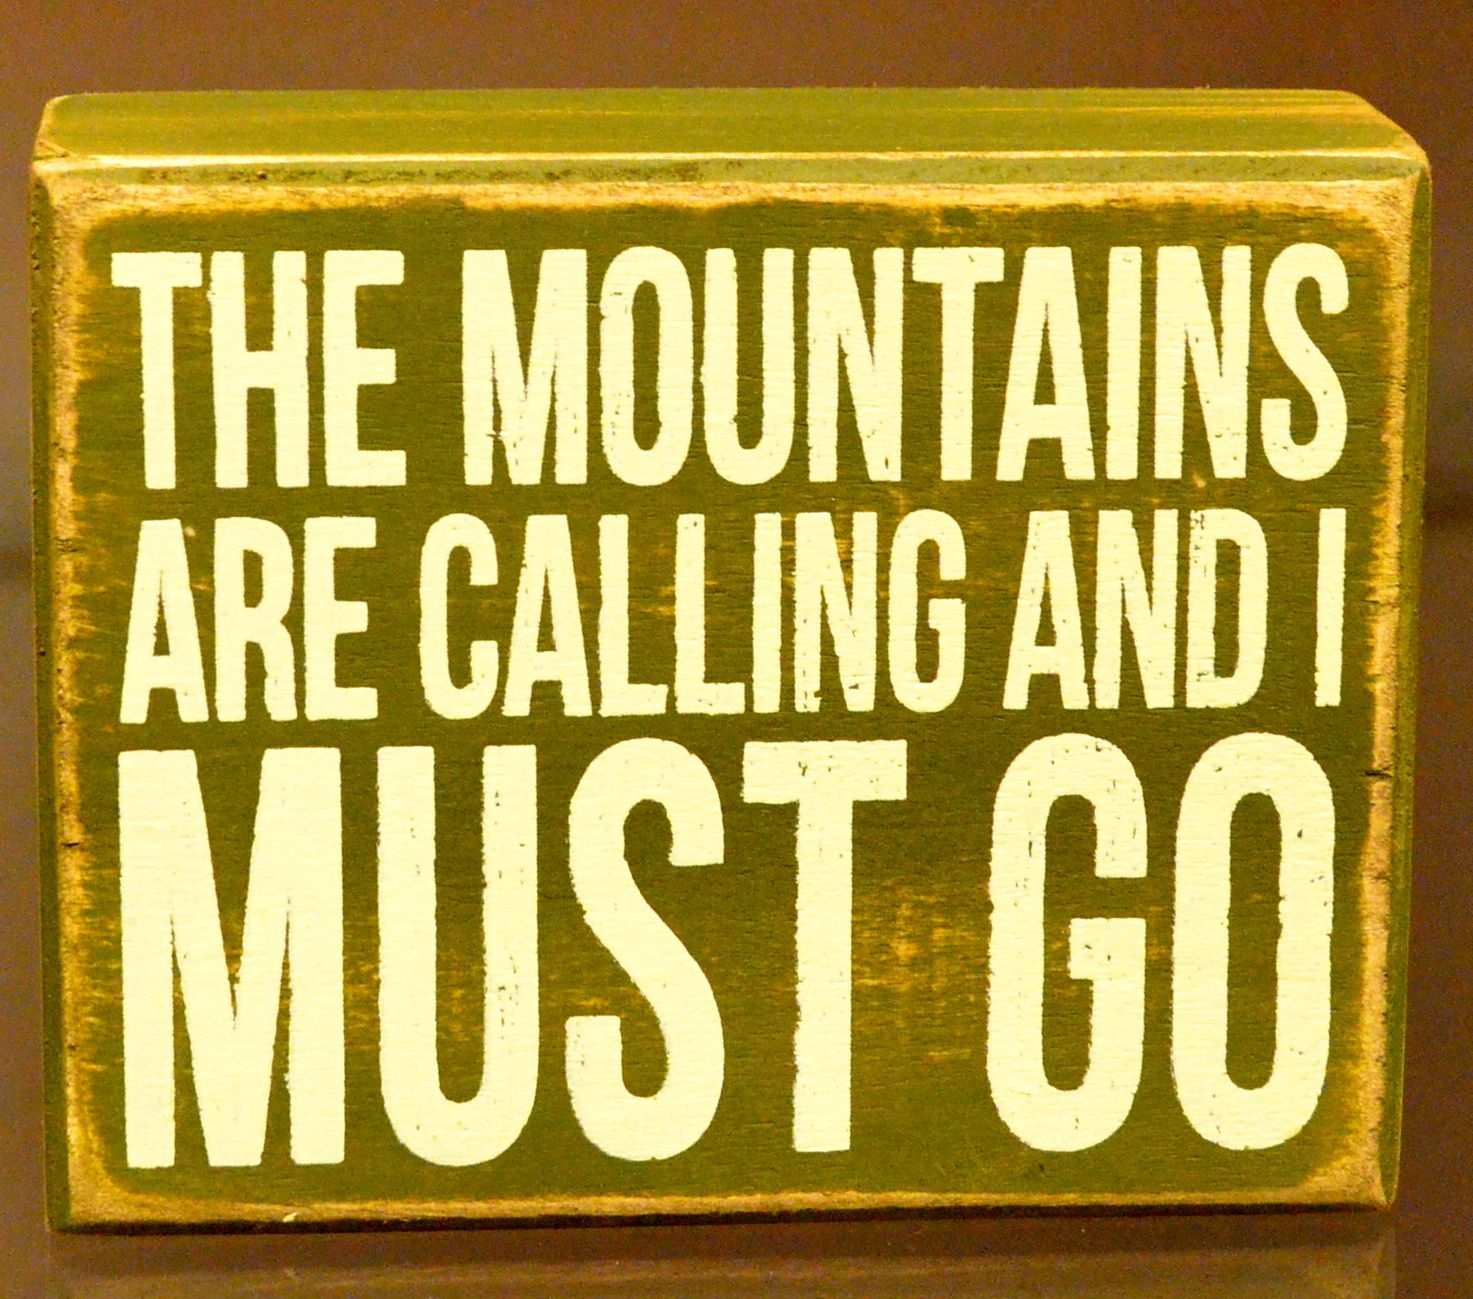 The Mountains are calling and I must go. Inspirational phrases ...